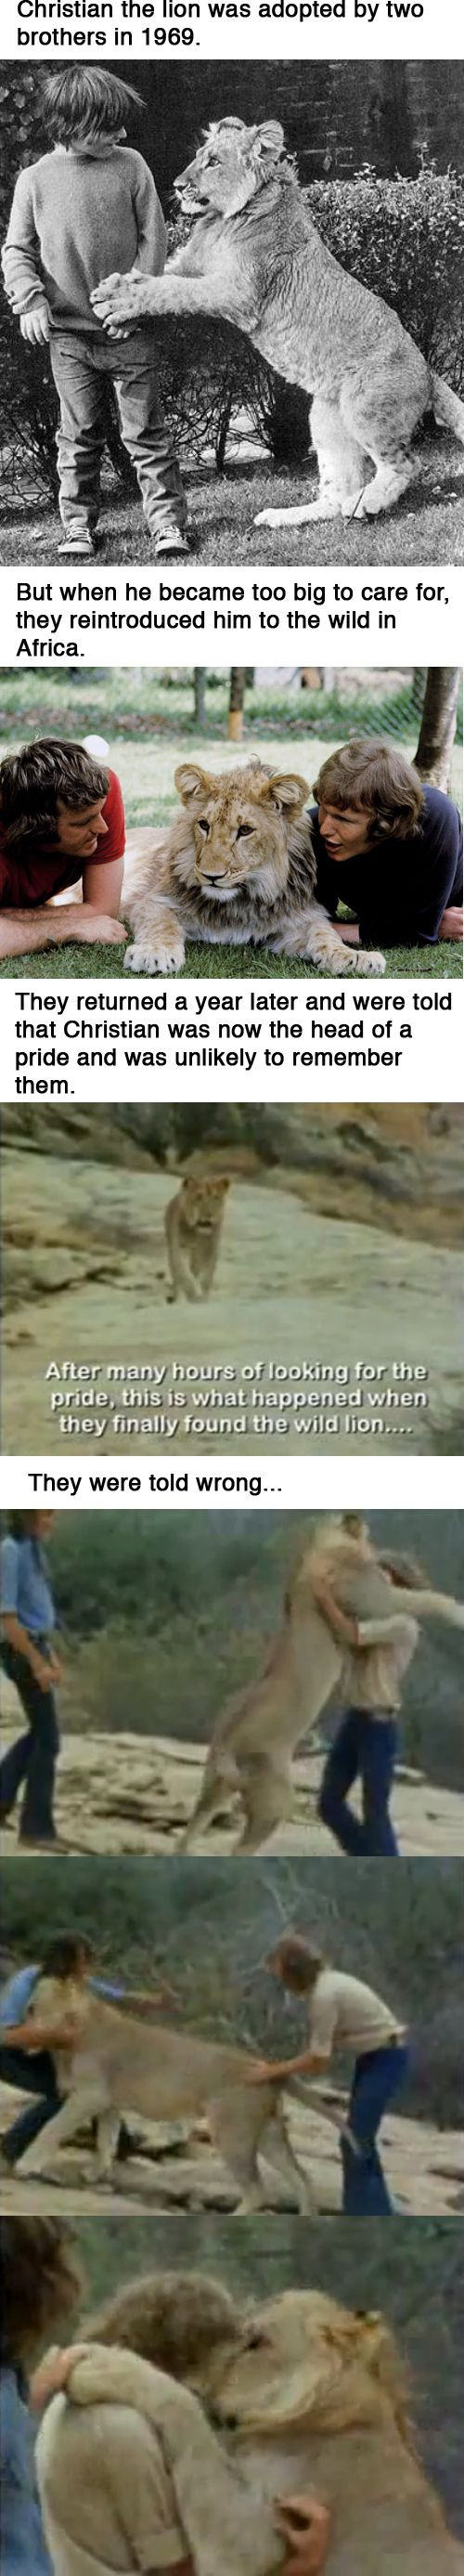 Melts my heart every time likes or repins is amazing. dont forget to listen to my songs. Thanks: Animal Quote, Animals, Cute Lion, Funny Happy Animal, Animal Saying, Quotes Animal